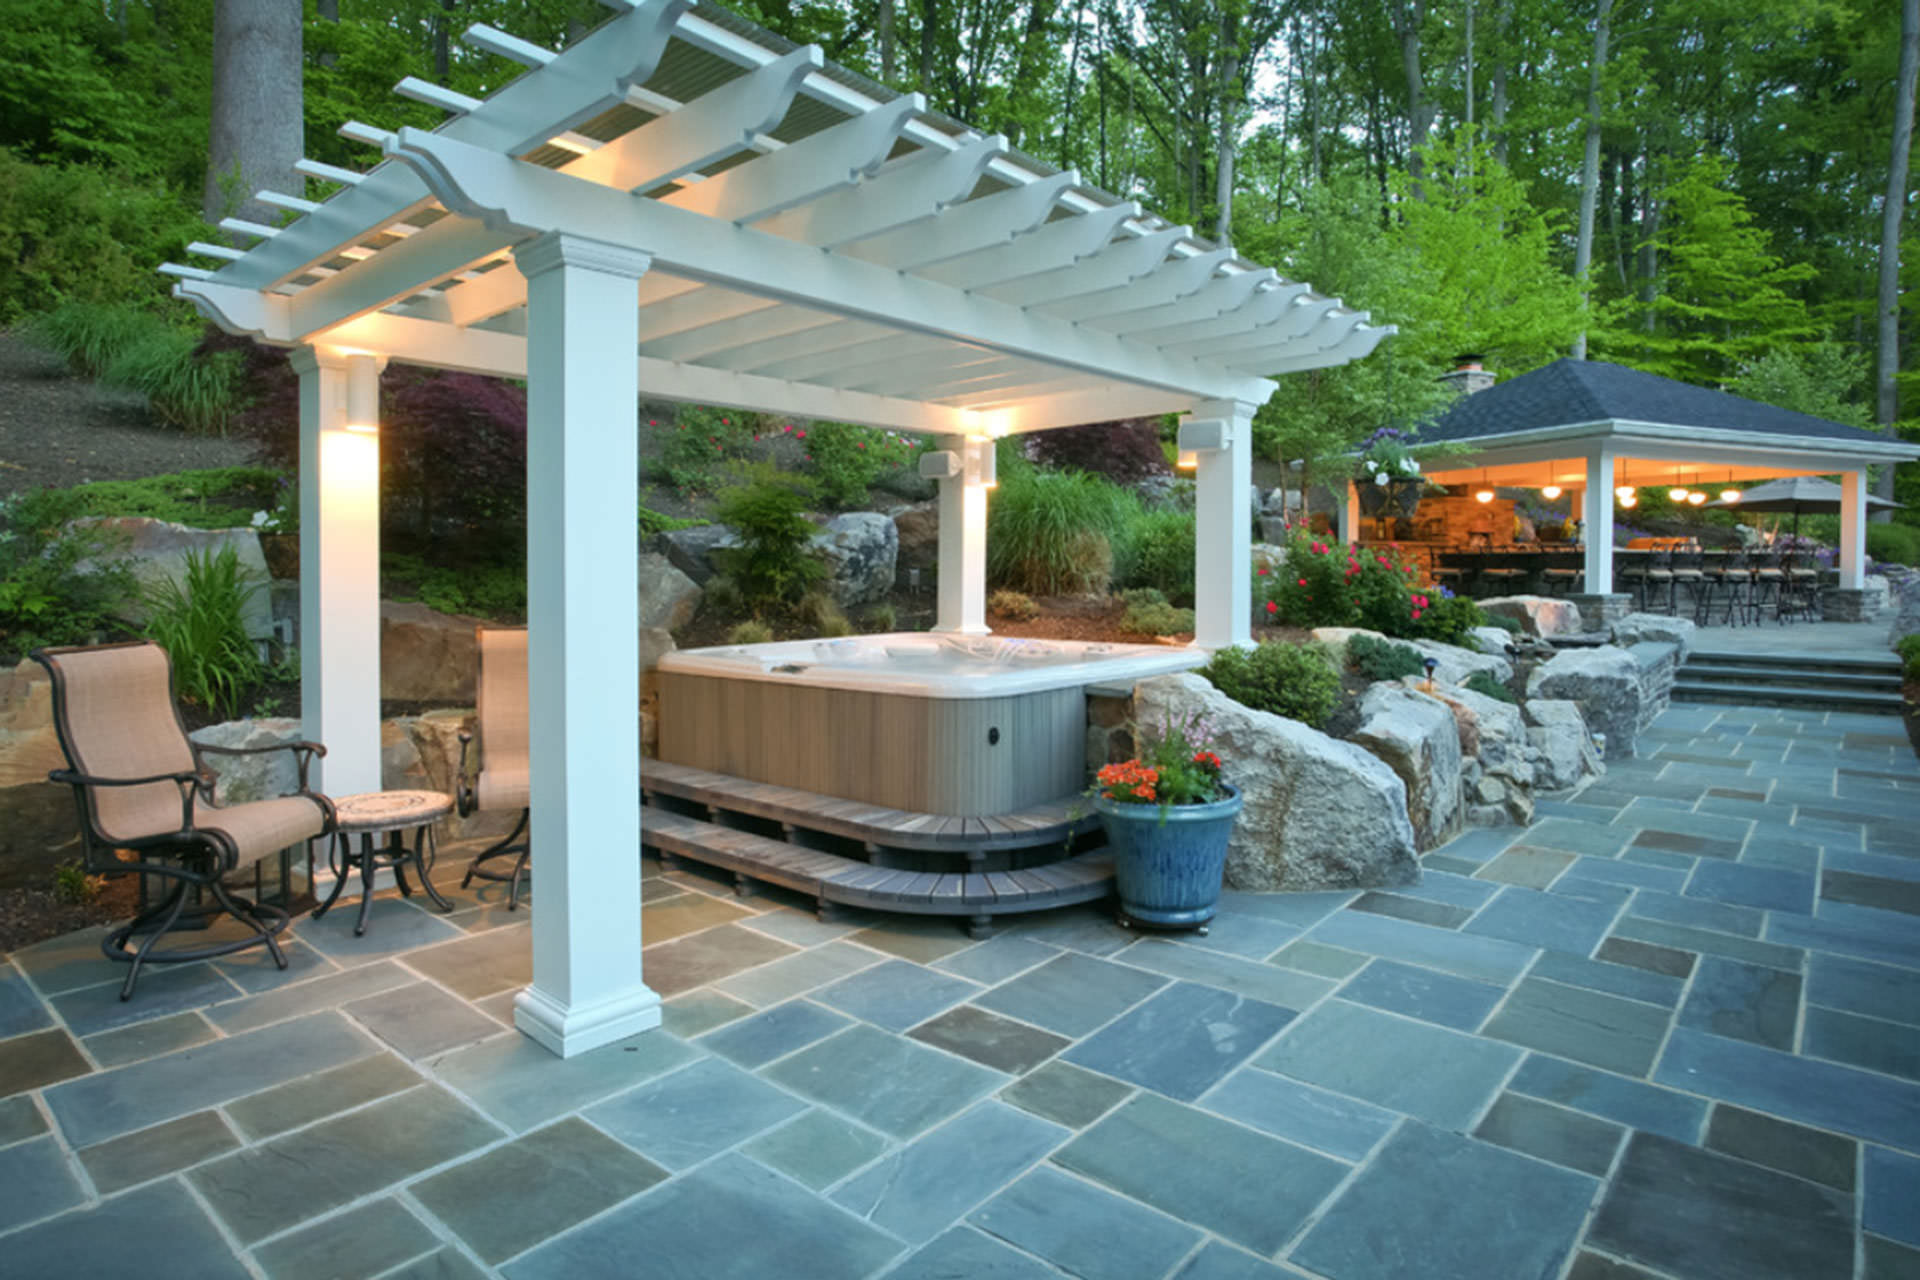 Five popular design features for outdoor entertaining for Backyard design ideas for entertaining